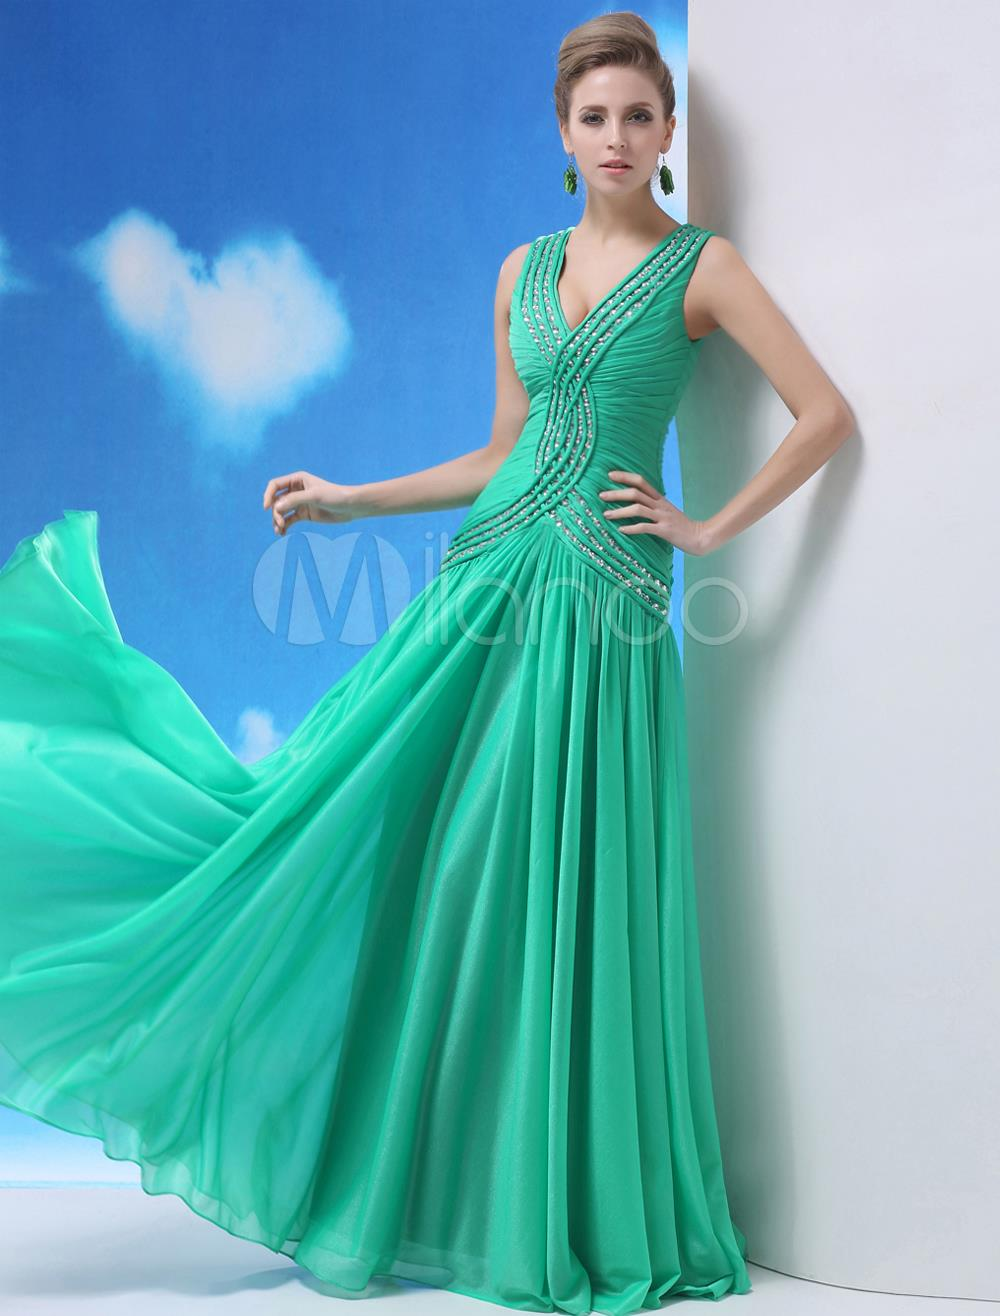 American Bridal Prom Dress And Maxi Collection 2015 | She12: Girls ...